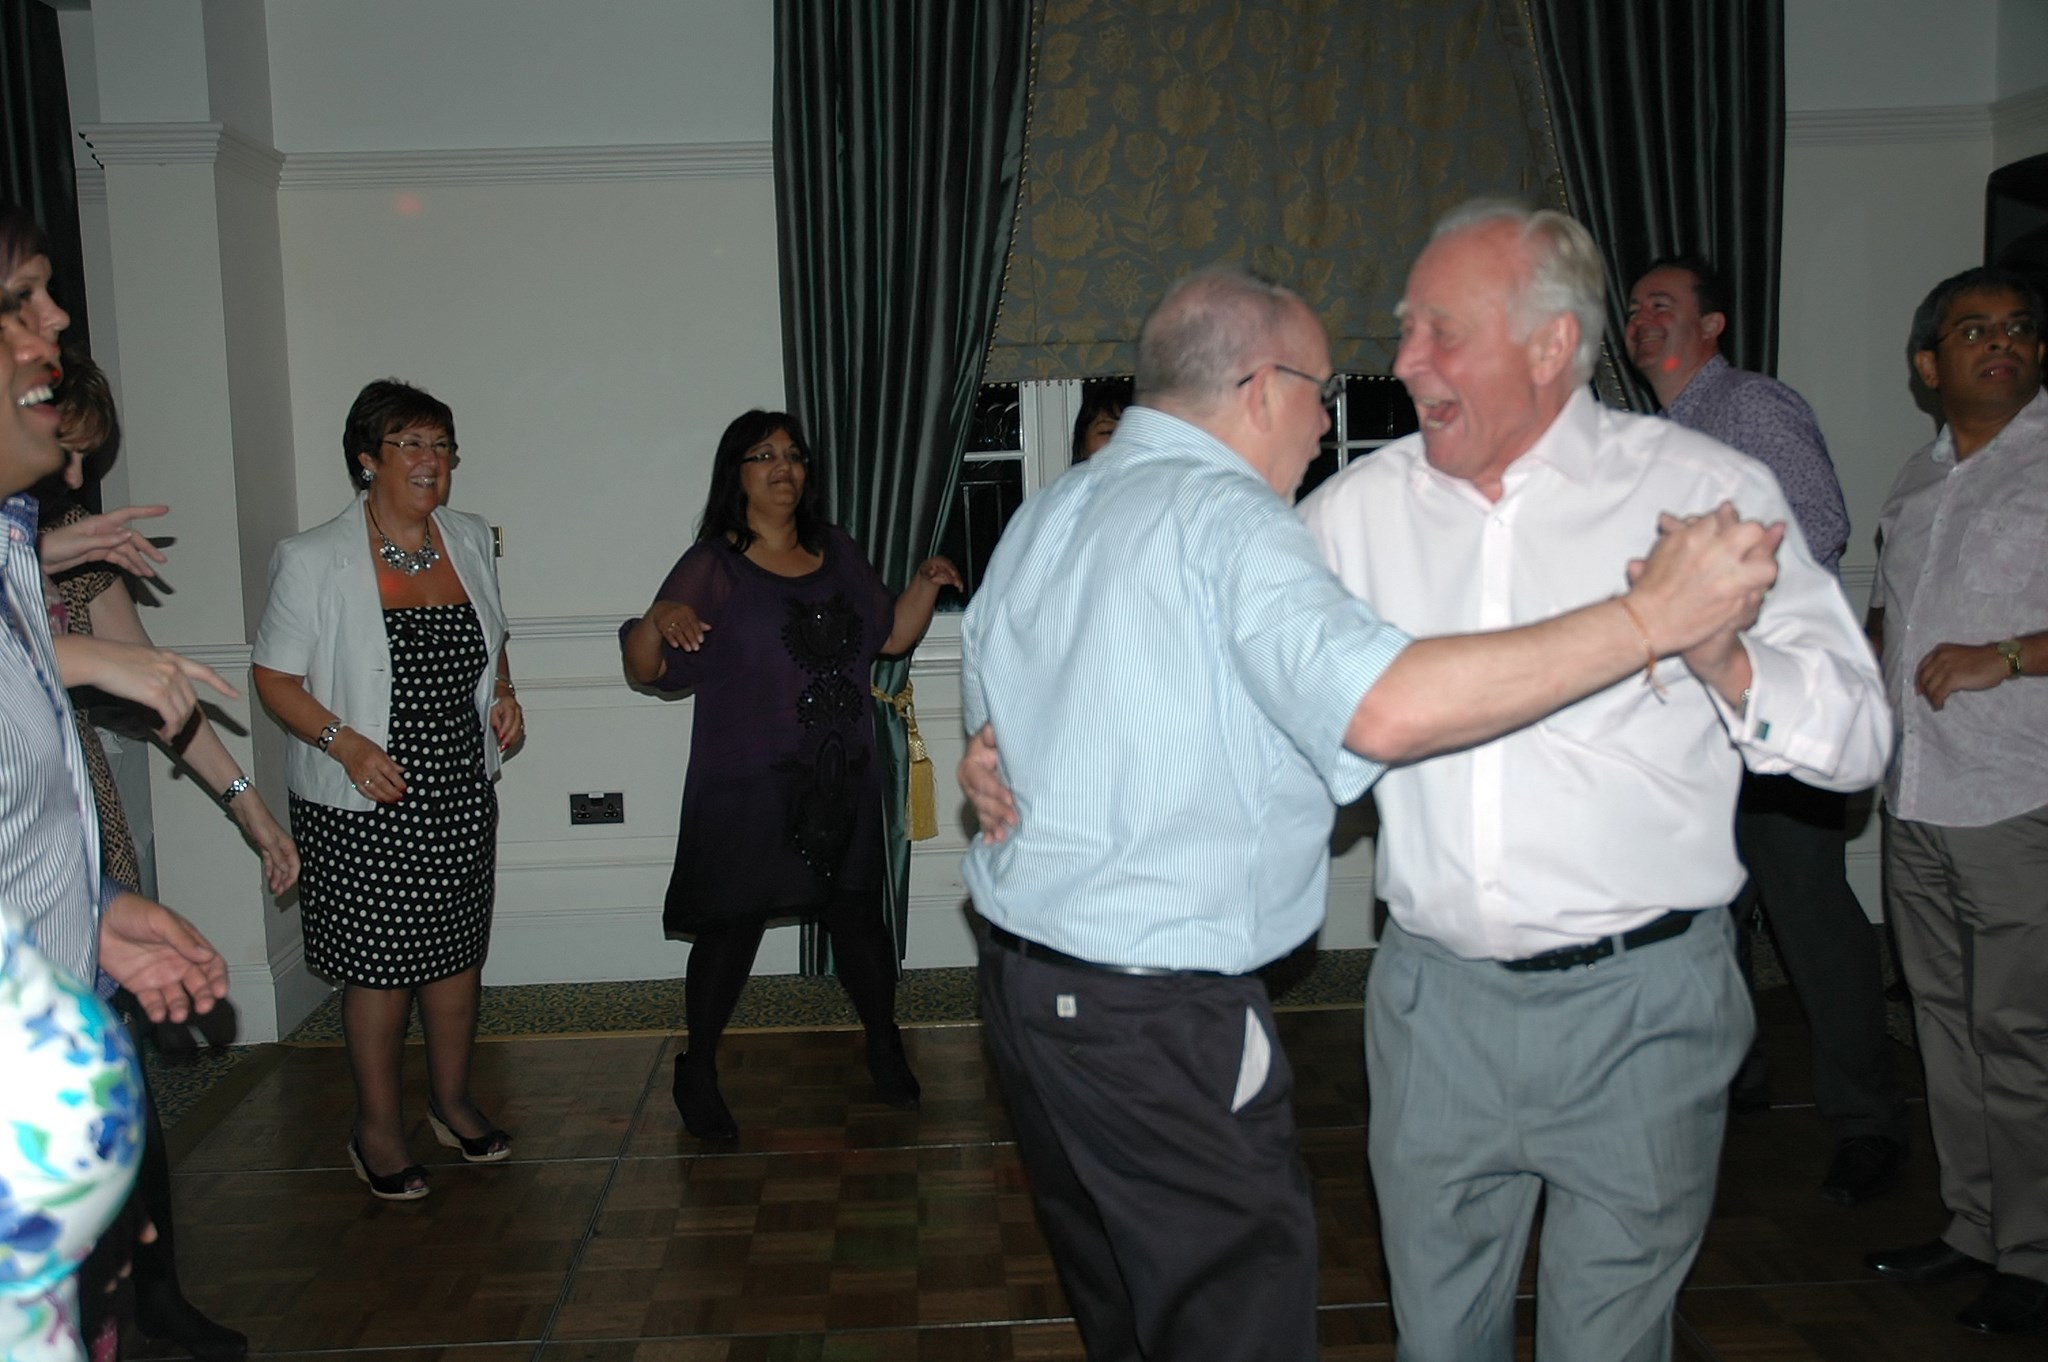 Hughie's ballroom dancing lessons start to pay off.